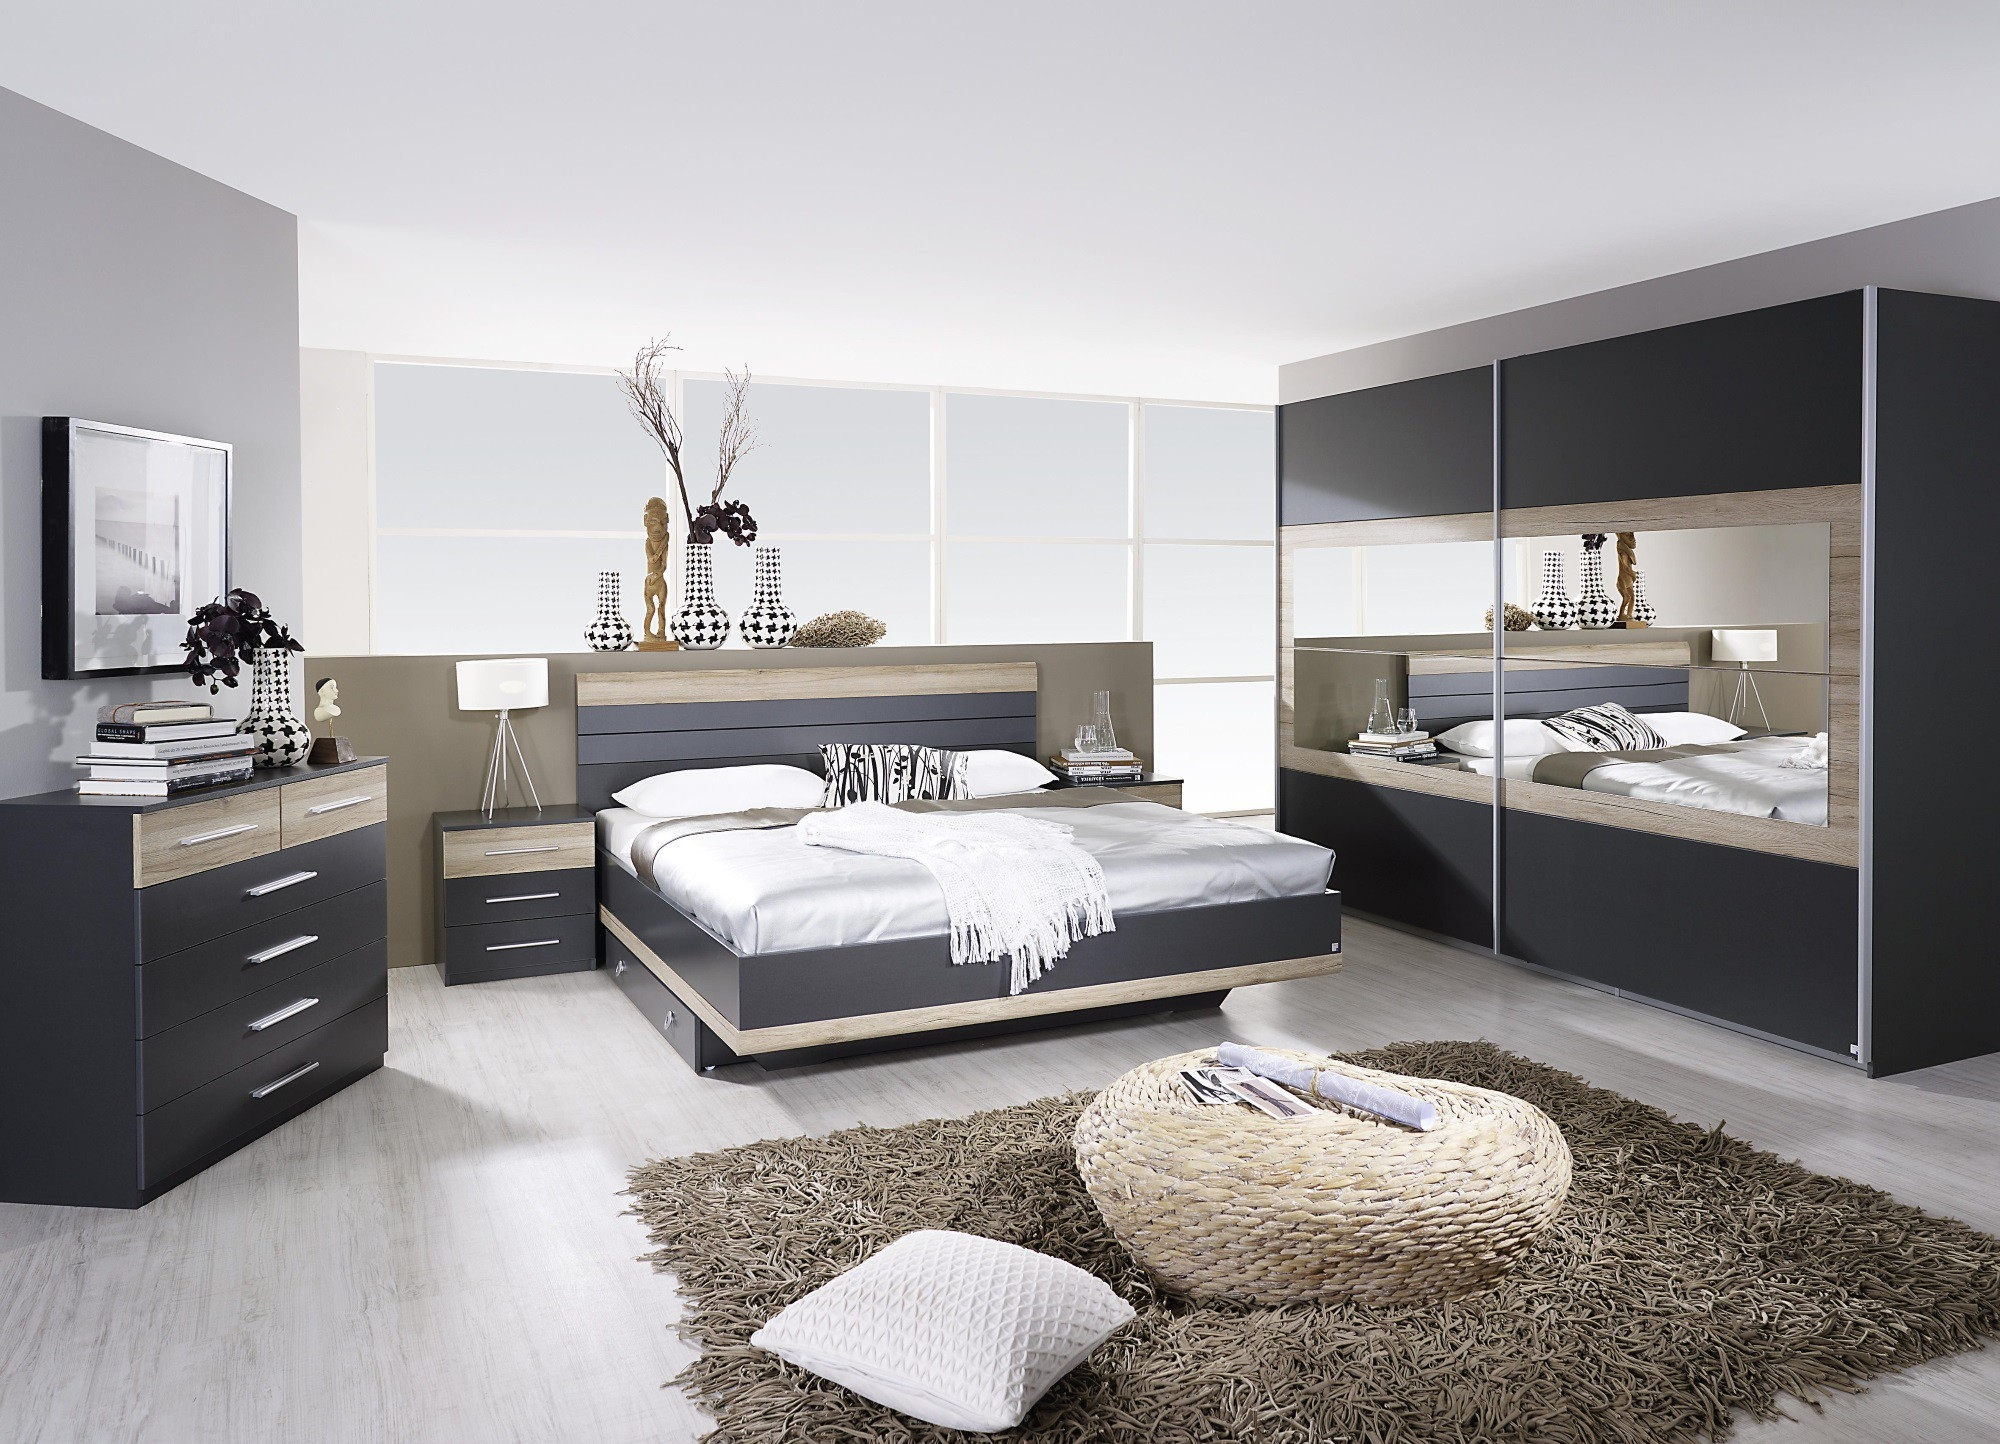 Chambre adulte compl te contemporaine gris ch ne clair for Deco chambre contemporaine